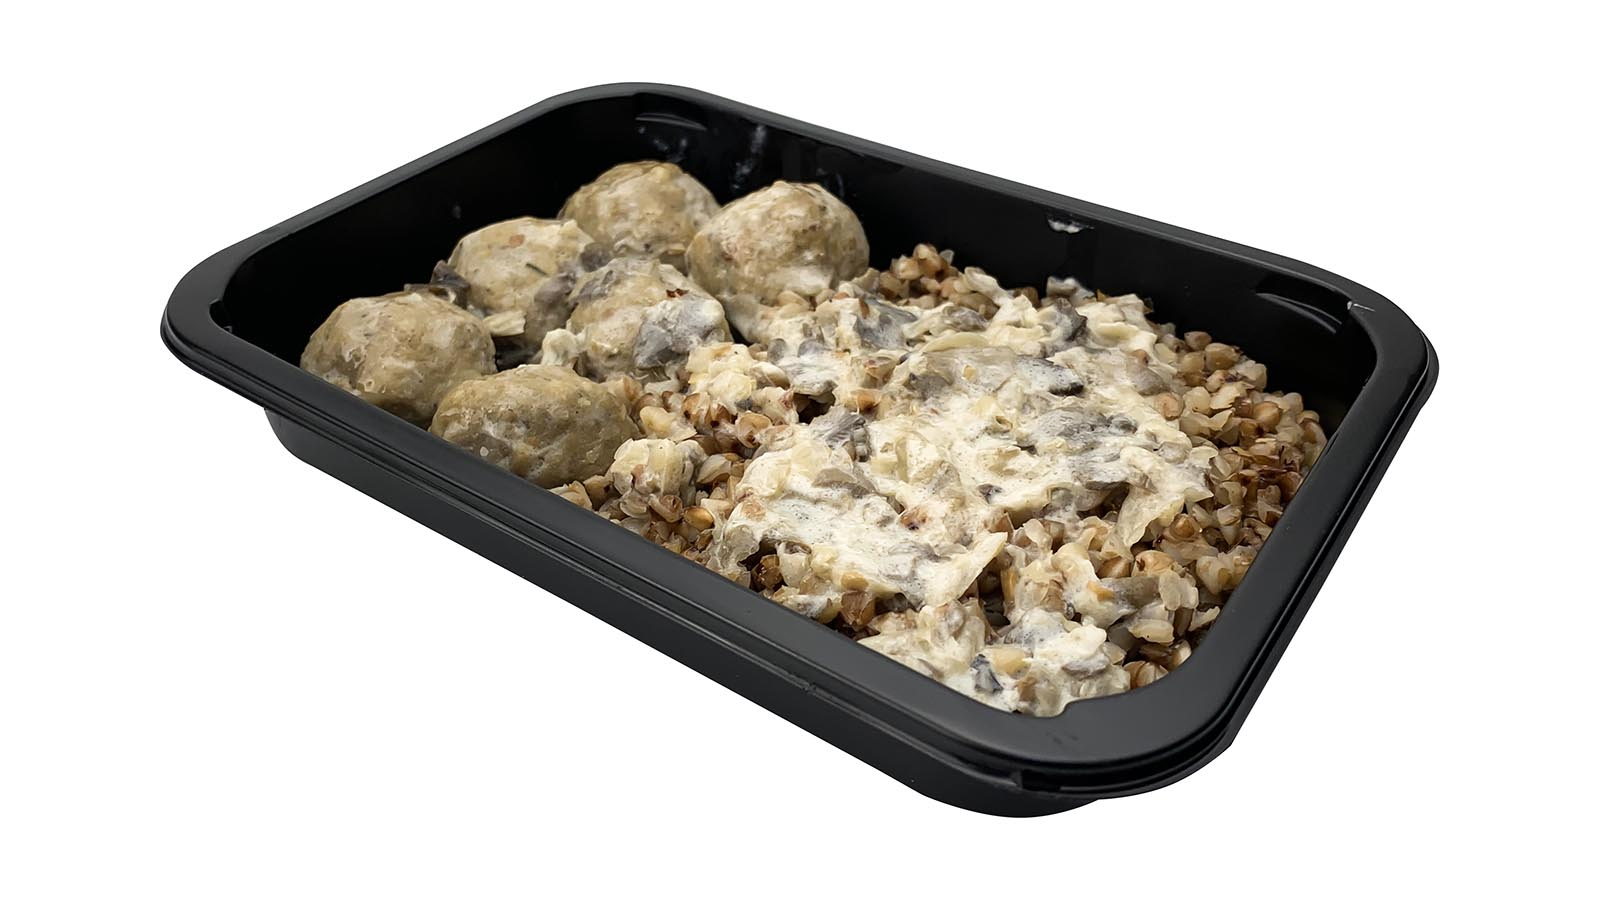 Buckwheat with mitballs in mushroom sauce, 0.3 kg